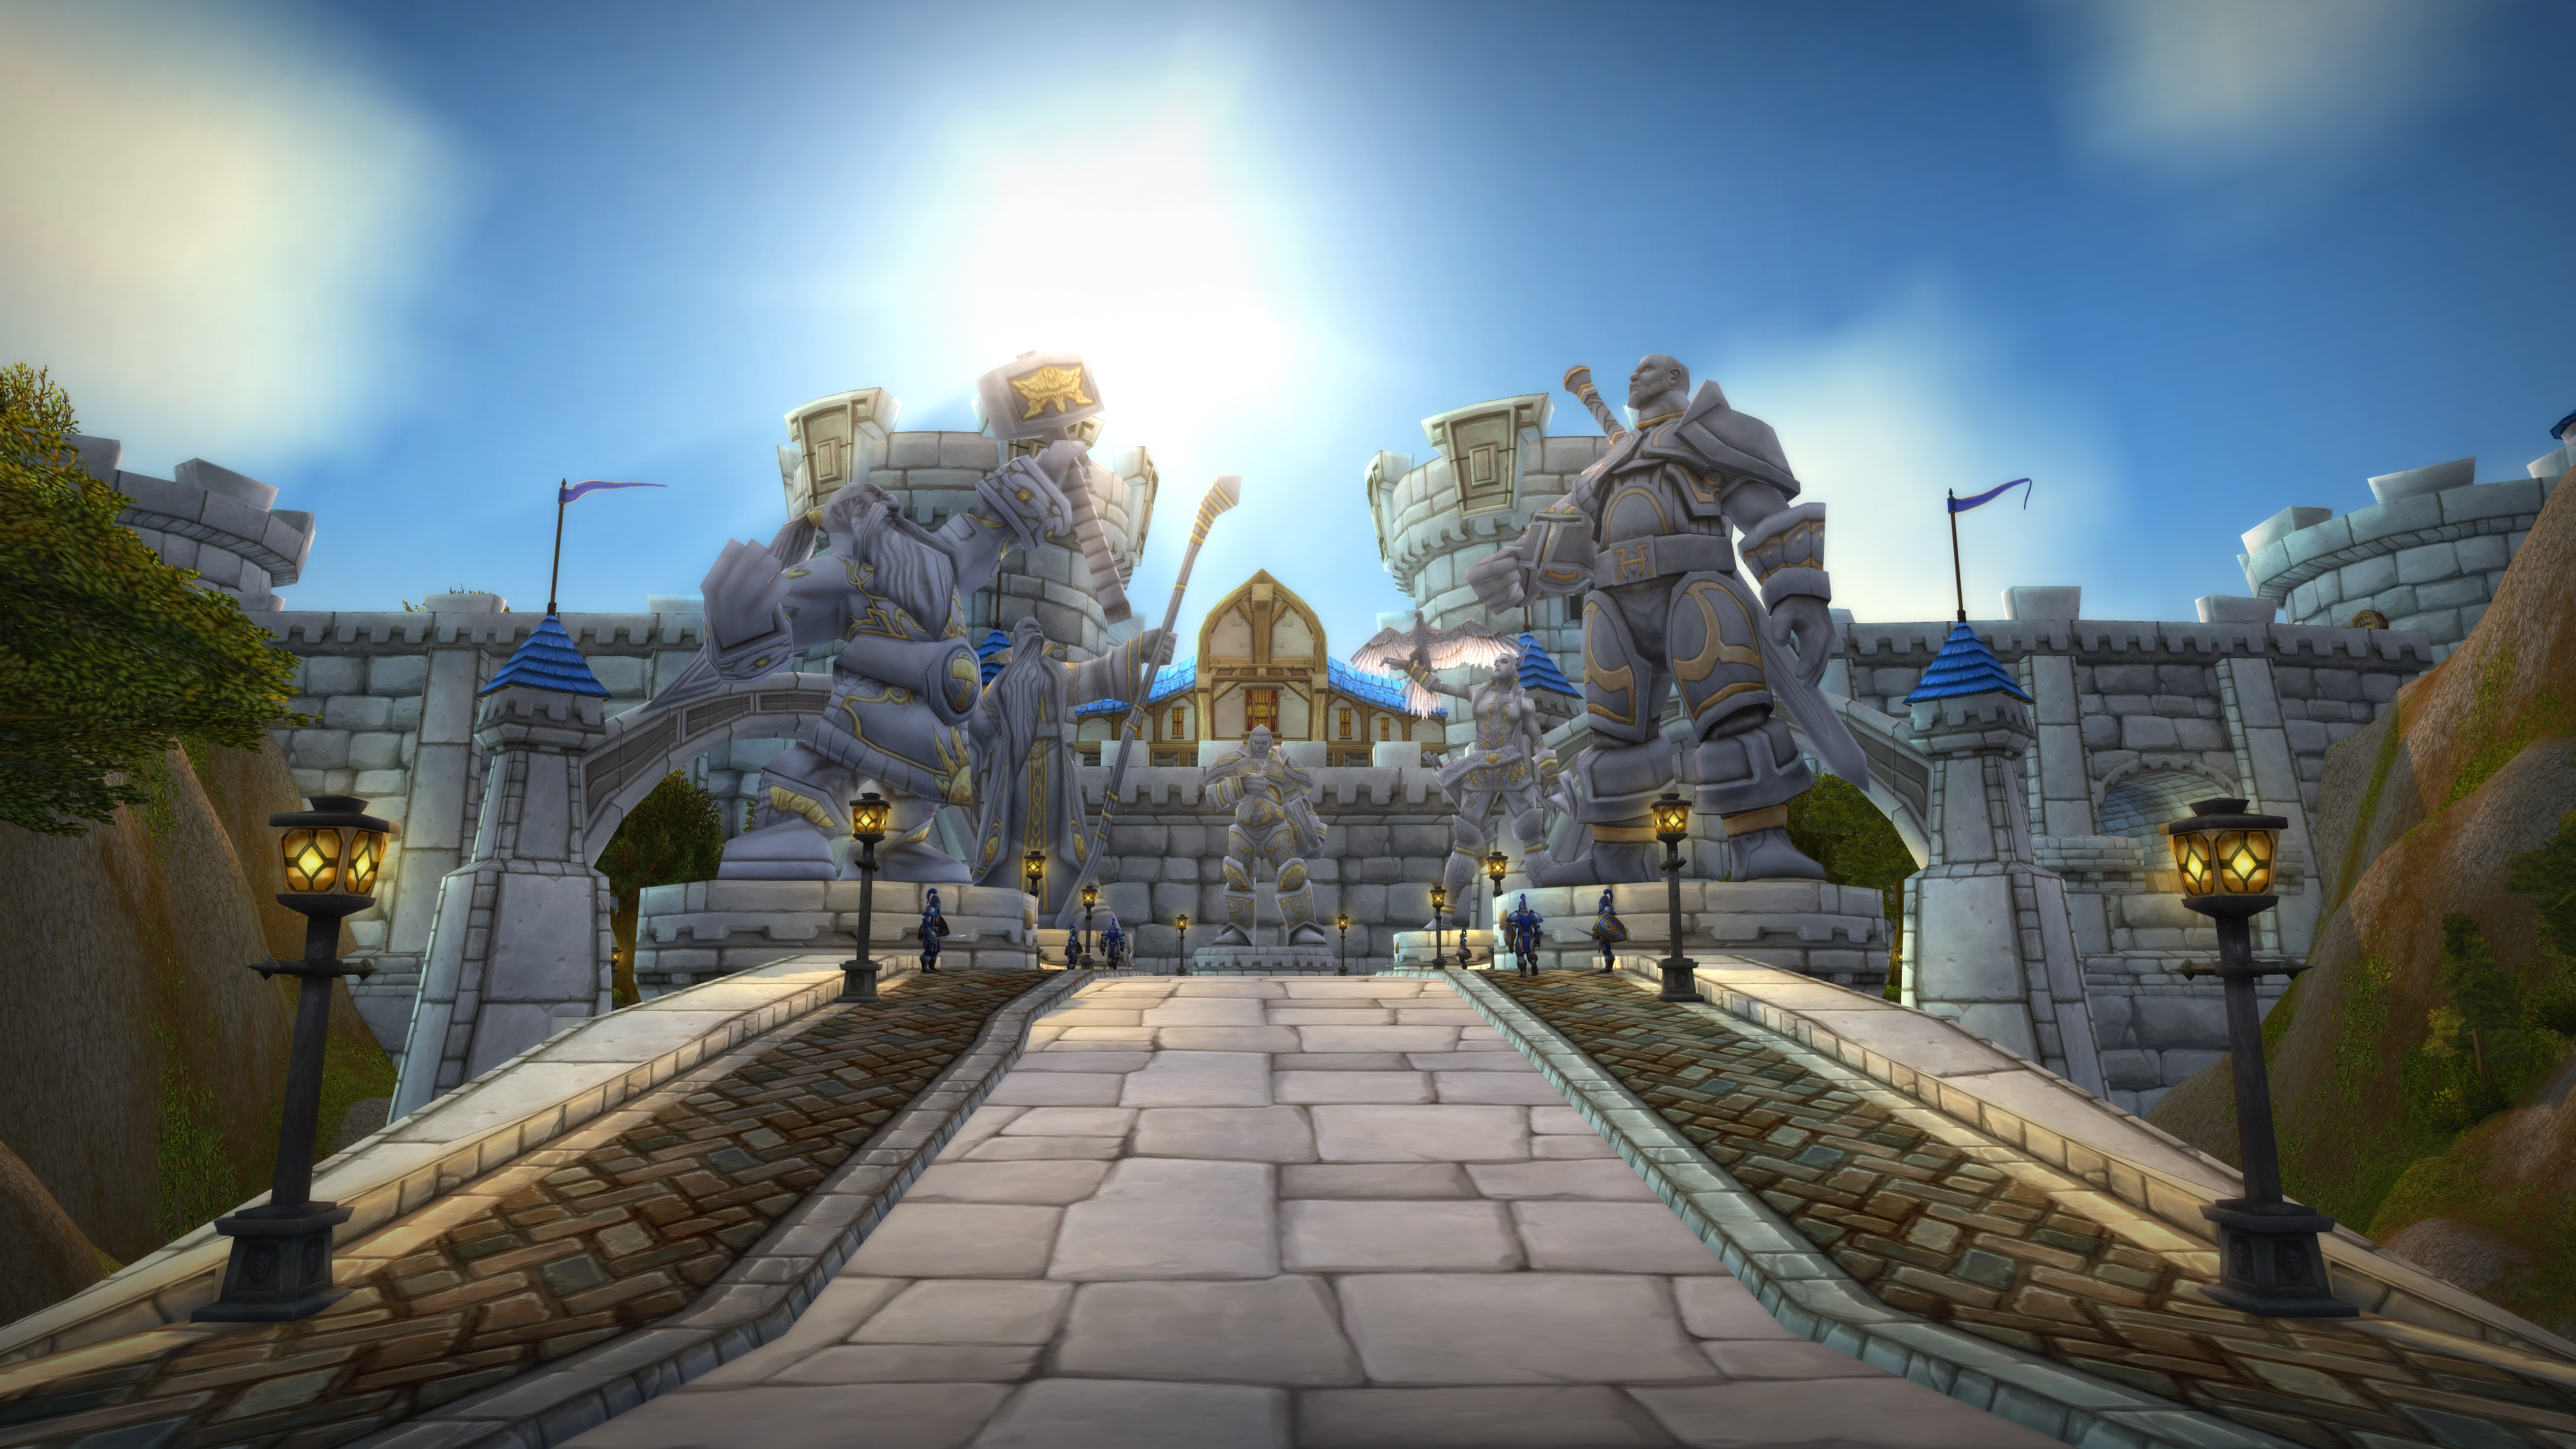 Blizzard Releases 4k World Of Warcraft Backgrounds For New And